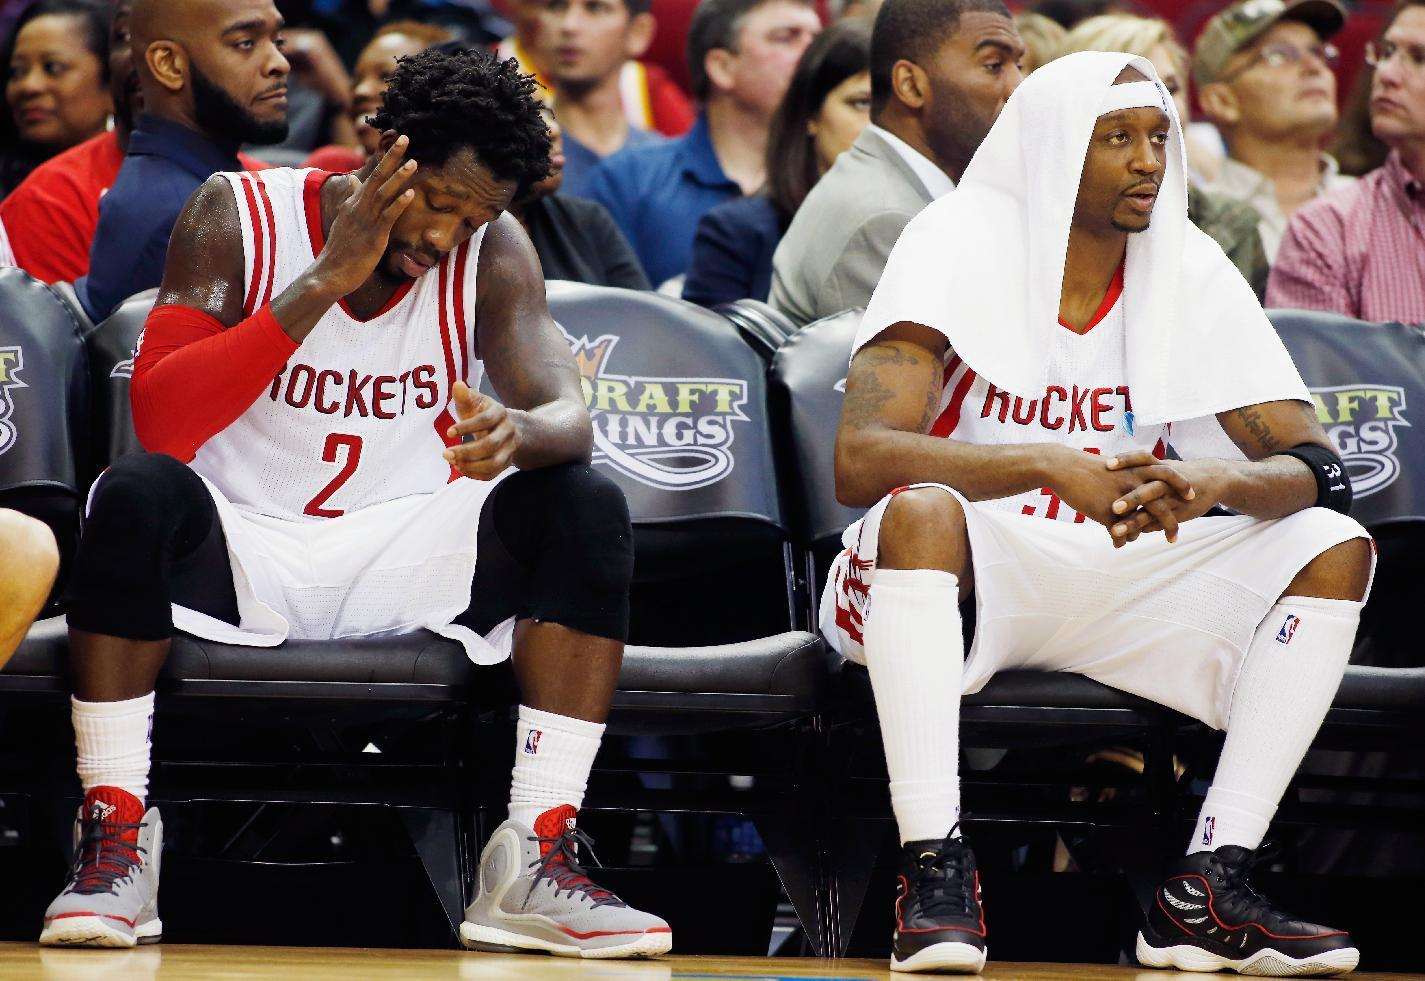 NBA - Rockets edge Pelicans in Howard's return